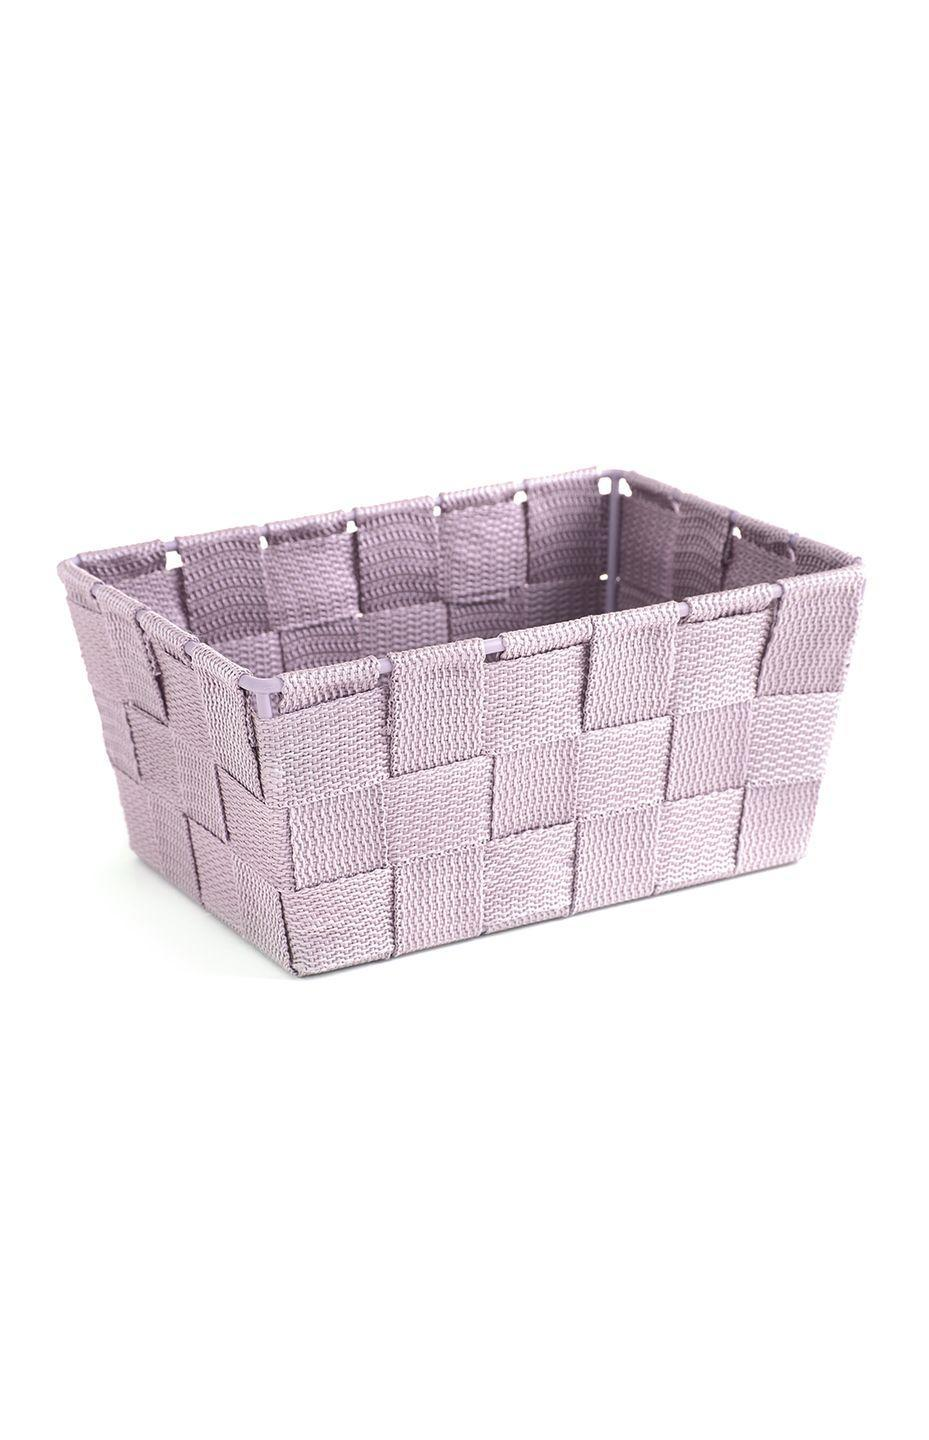 <p>Woven basket in pink, price unknown </p>